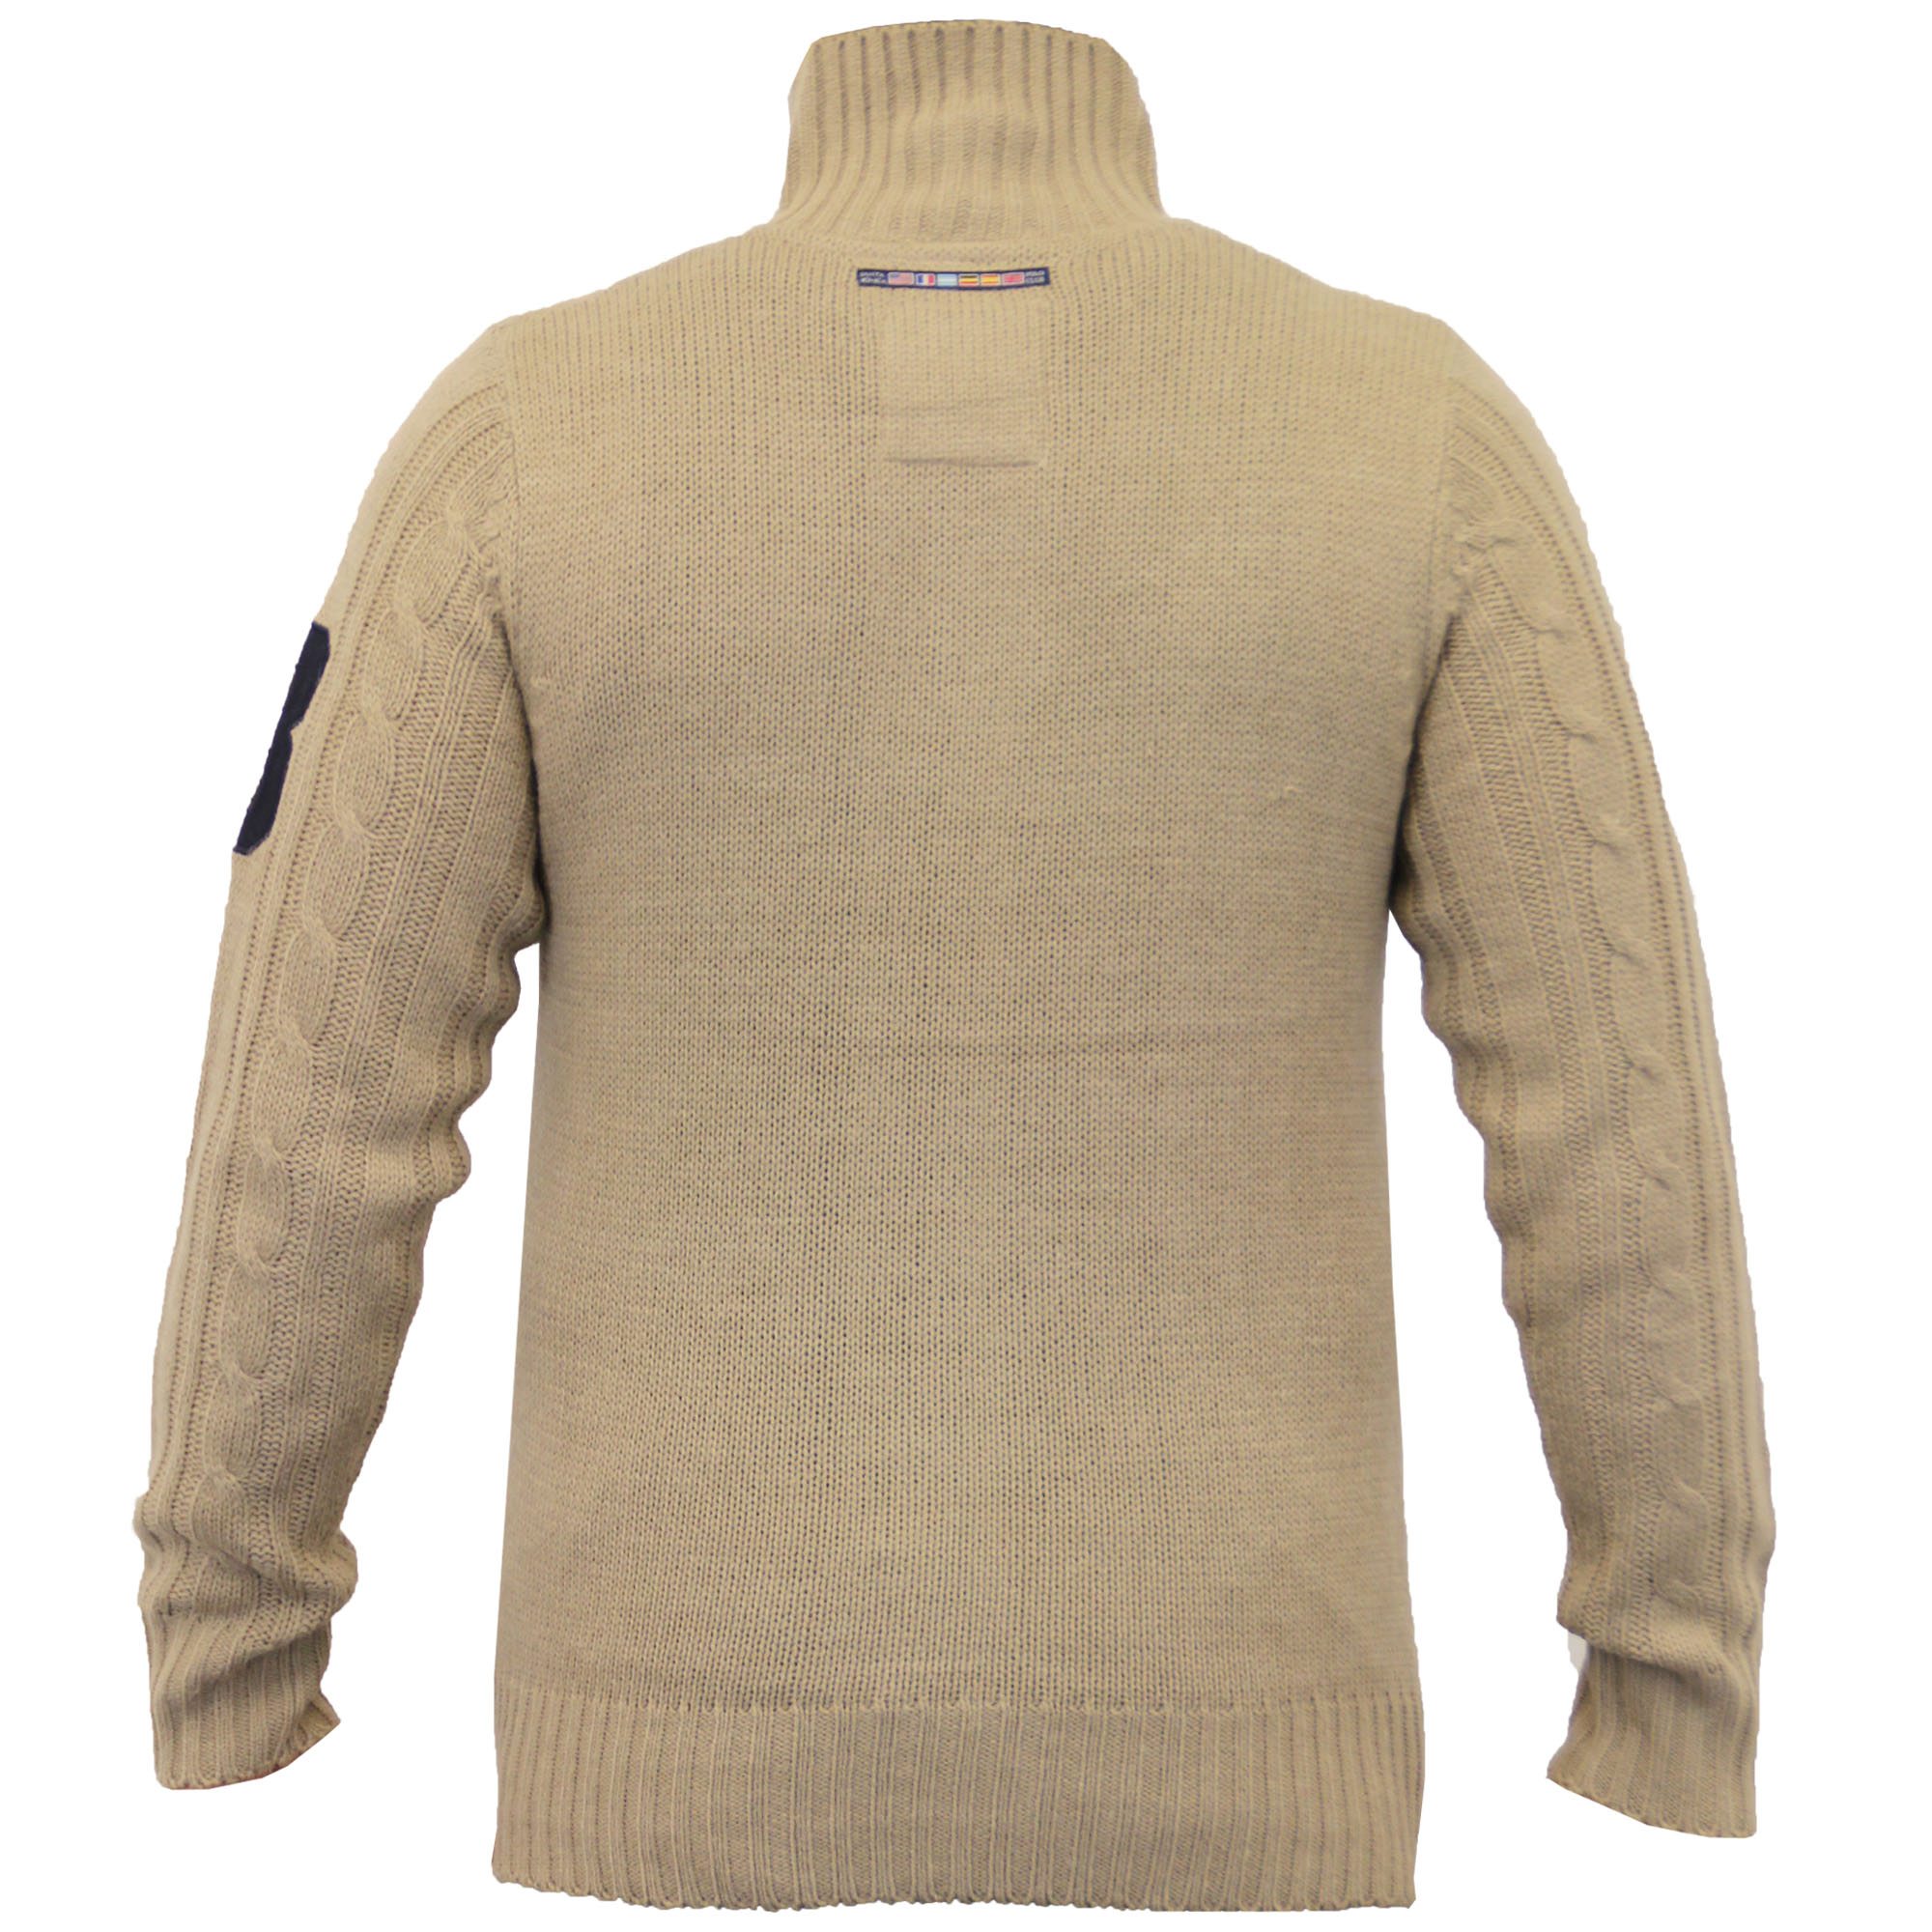 Mens-Wool-Mix-Jumpers-Santa-Monica-Cable-Knitted-Jacquard-Sweater-Pullover-New thumbnail 14